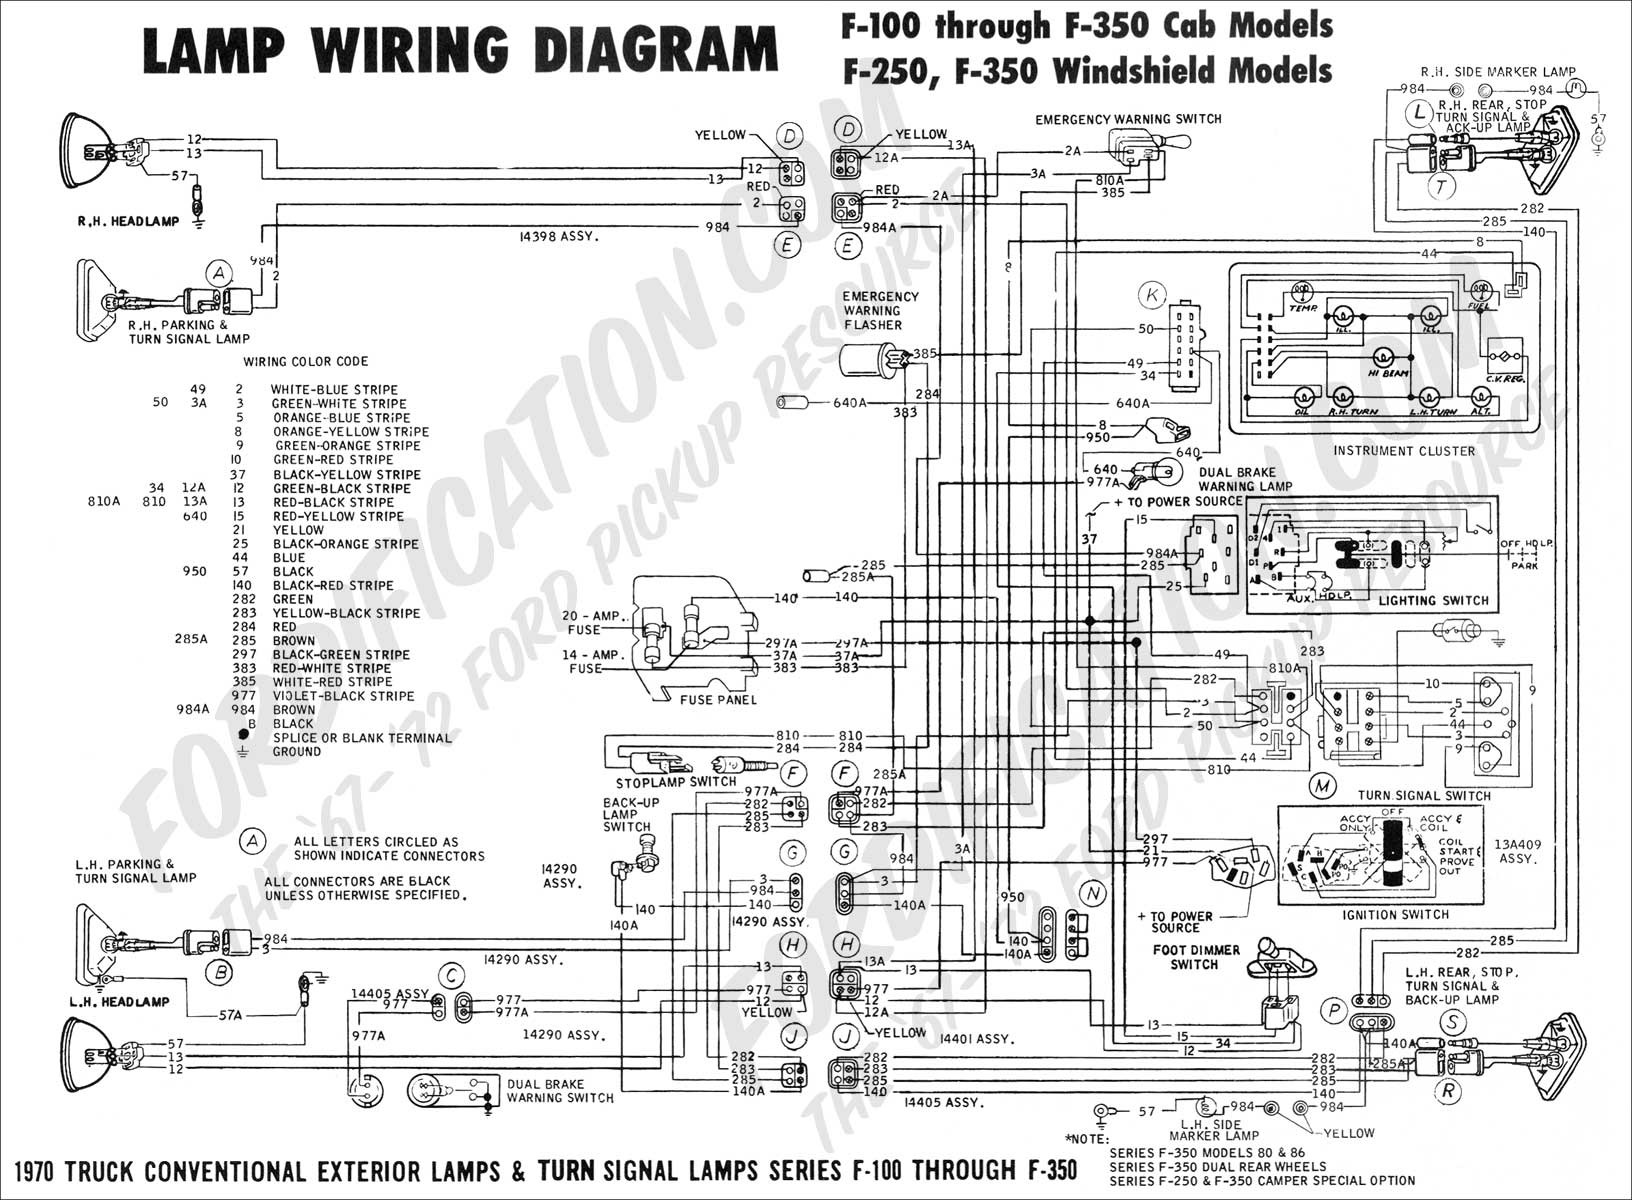 1996 Ford F 150 Trailer Wiring Diagram Ford F150 Fuel System